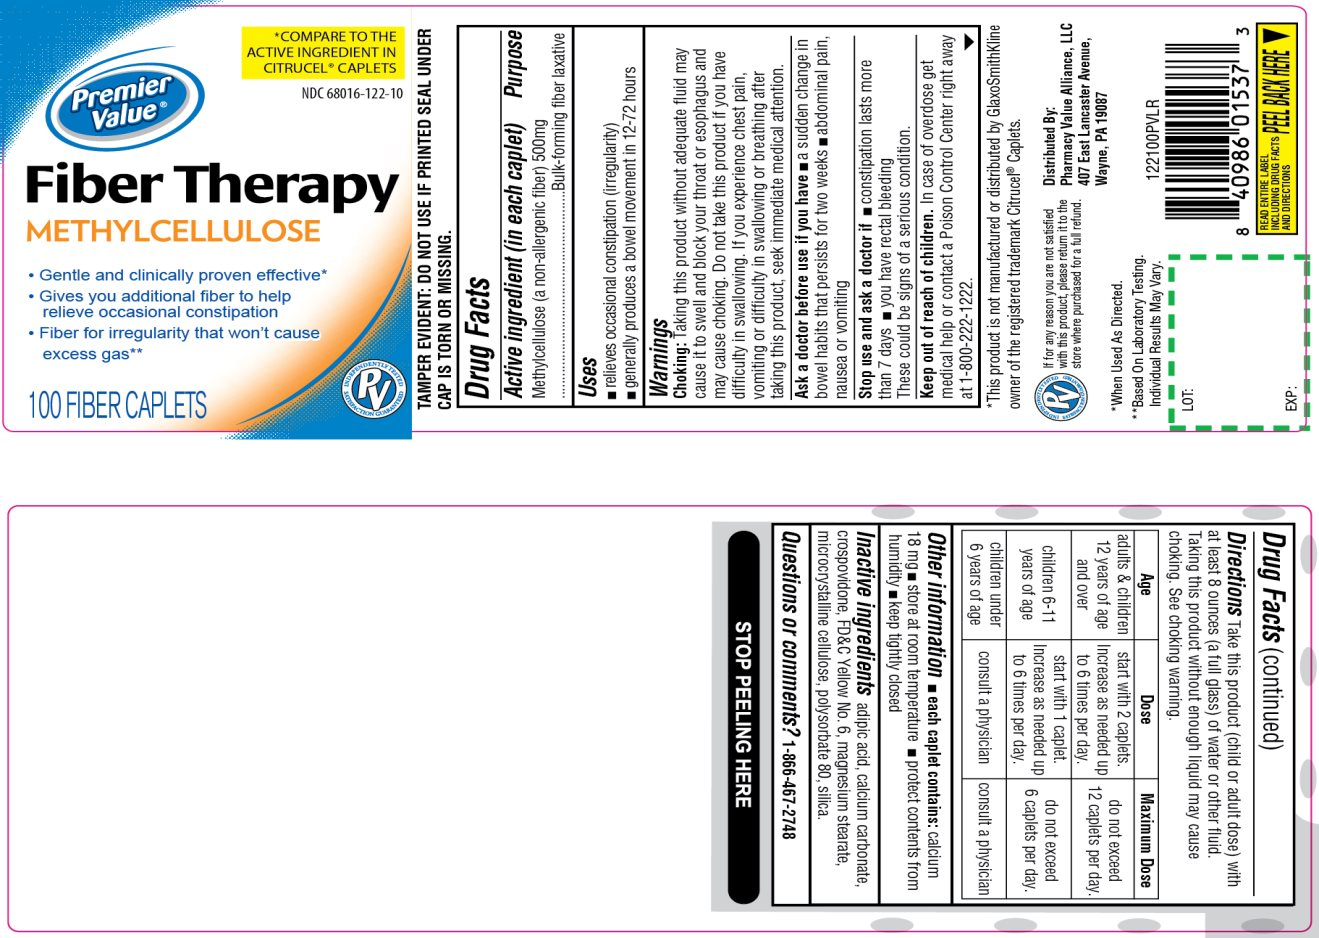 Fiber Therapy Methylcellulose